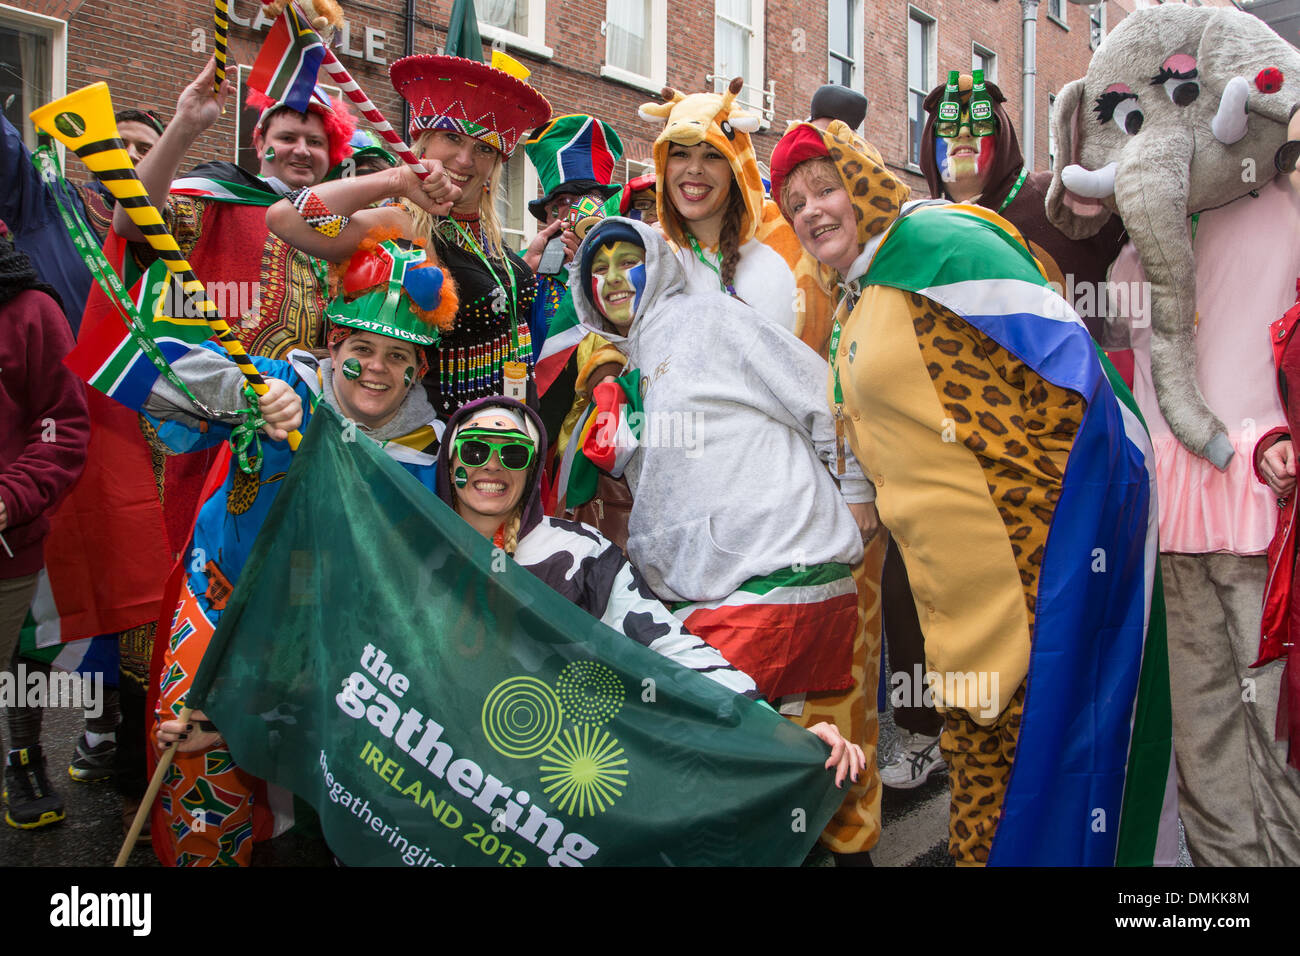 GROUP OF SOUTH AFRICANS PARTICIPATING IN THE GATHERING 2013, SAINT PATRICK'S DAY, DUBLIN, IRELAND - Stock Image